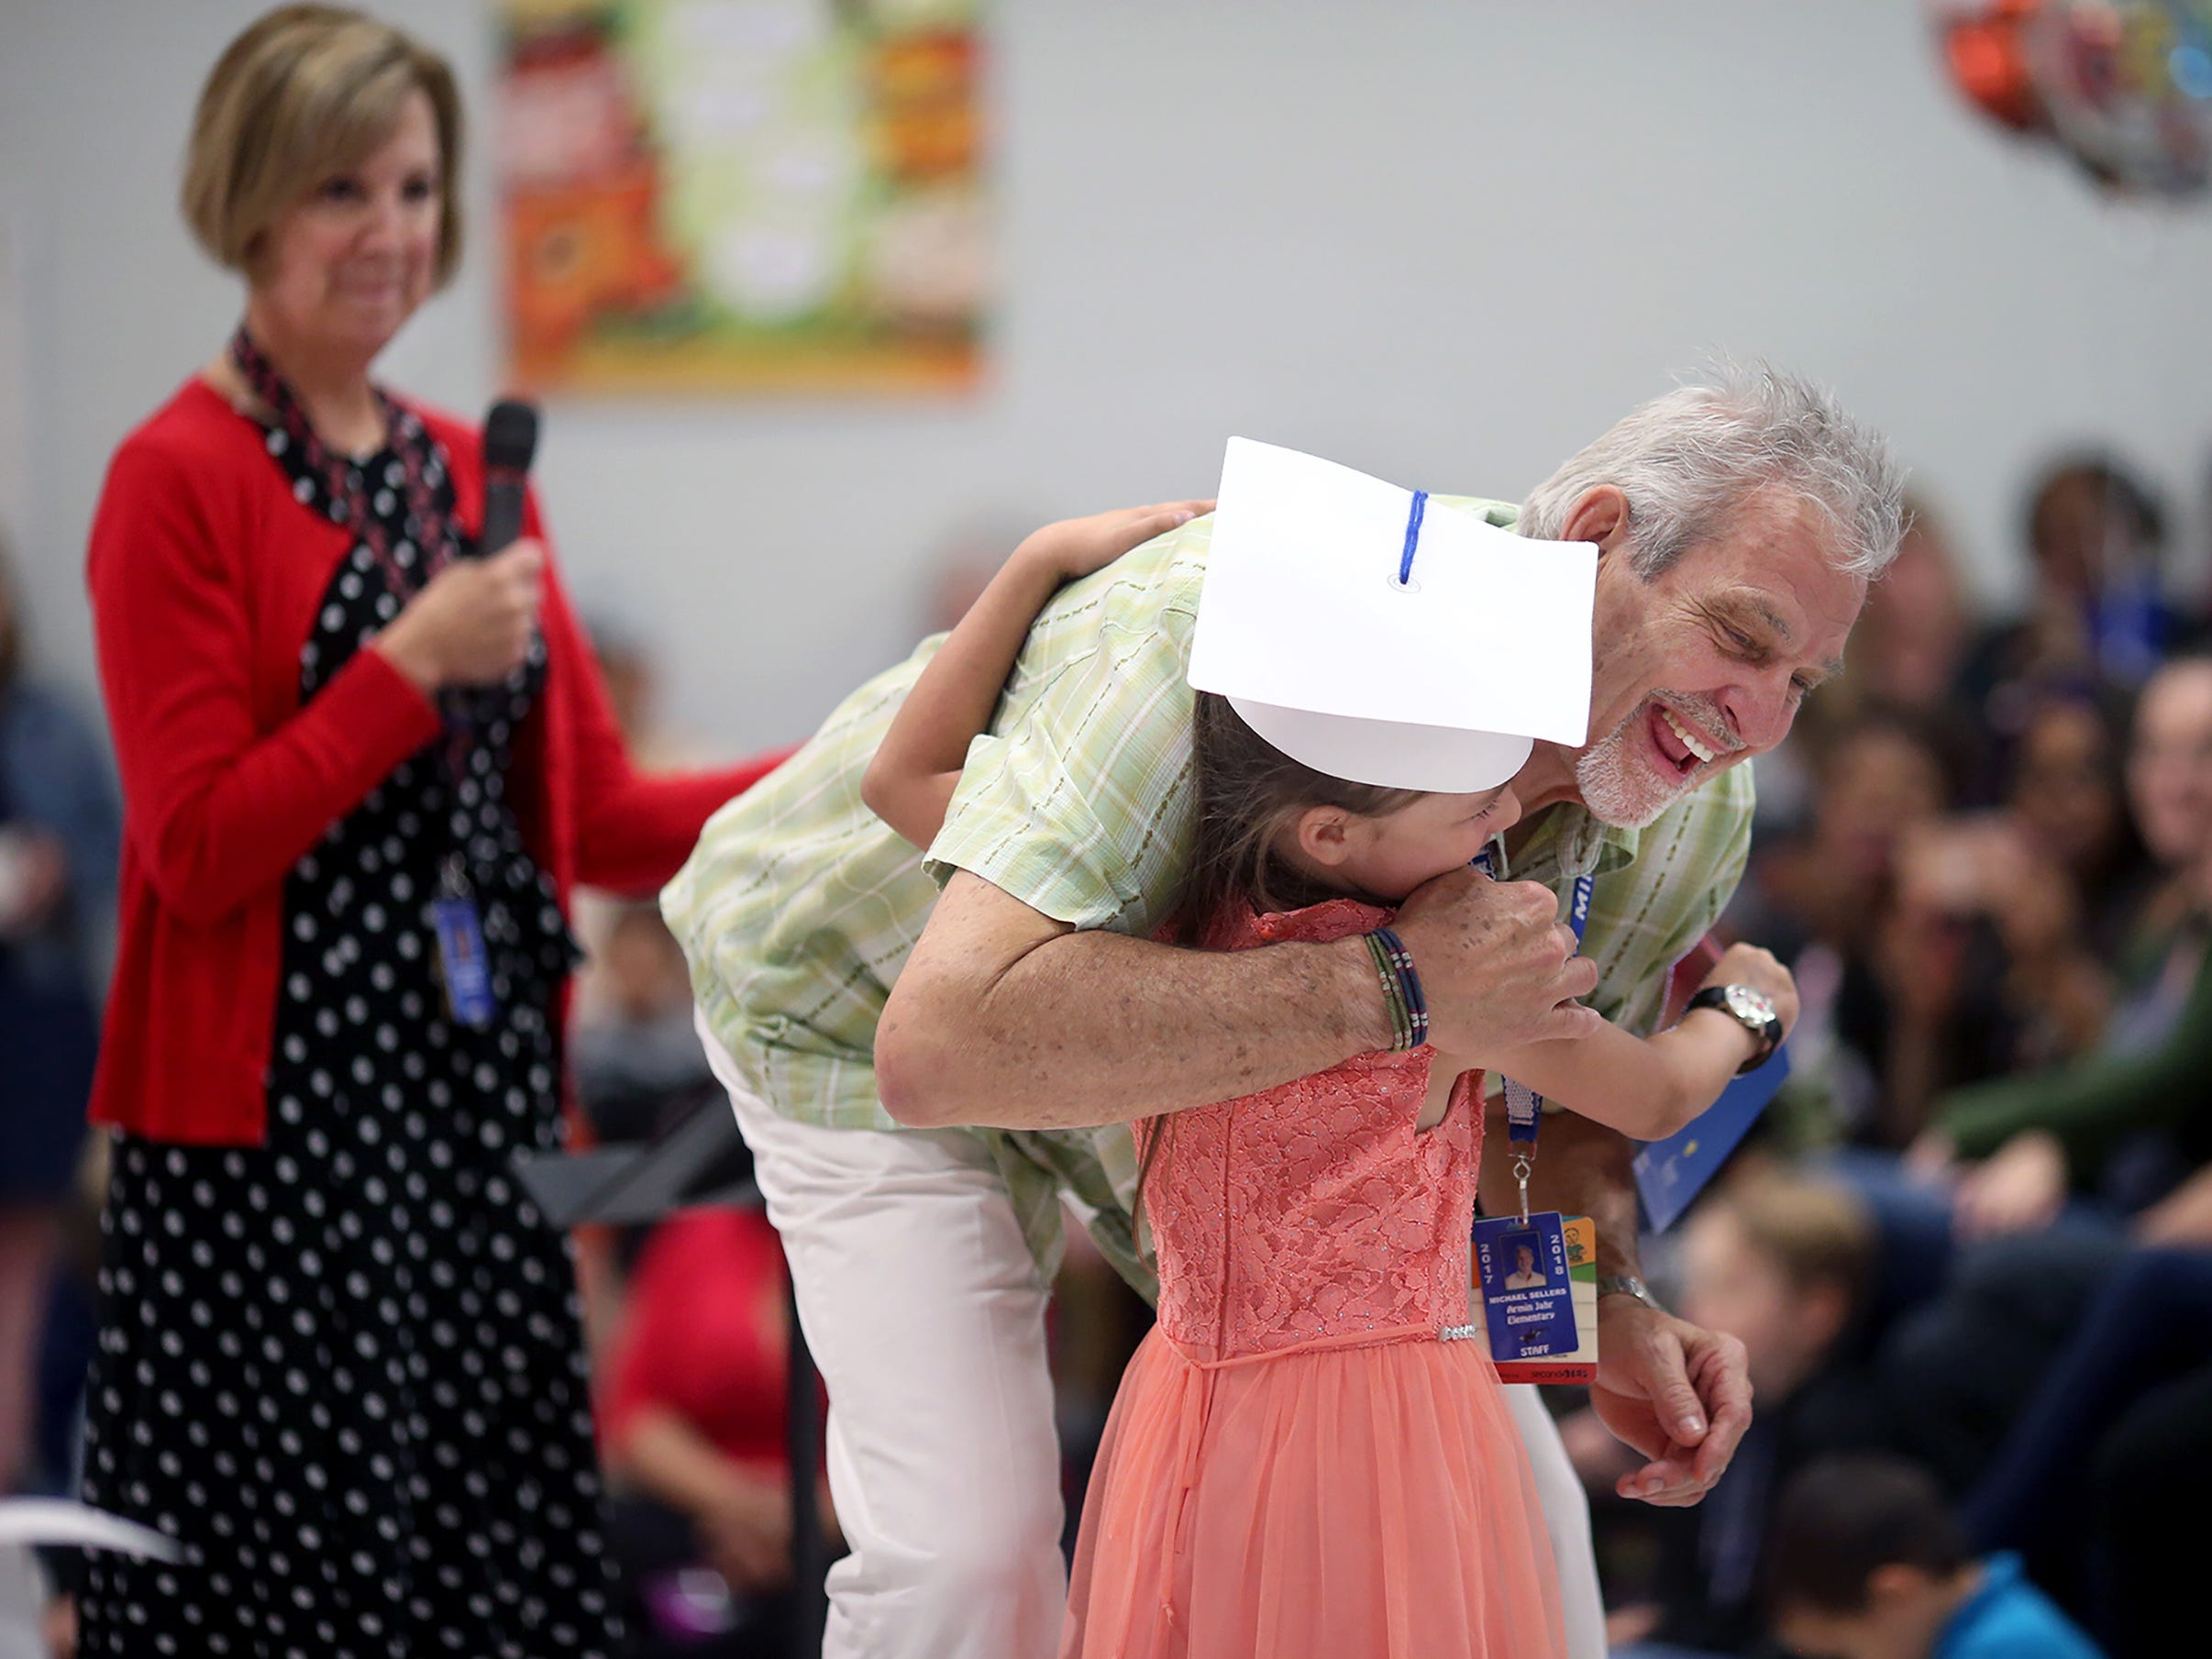 Armin Jahr Elementary School principal Mike Sellers gets a hug after a graduation ceremony for the kindergartners on the last day of school on June 15, 2018. He is retiring after 43 years in eductaion, along with kindergarten teacher Vicki Golmstad behind him.